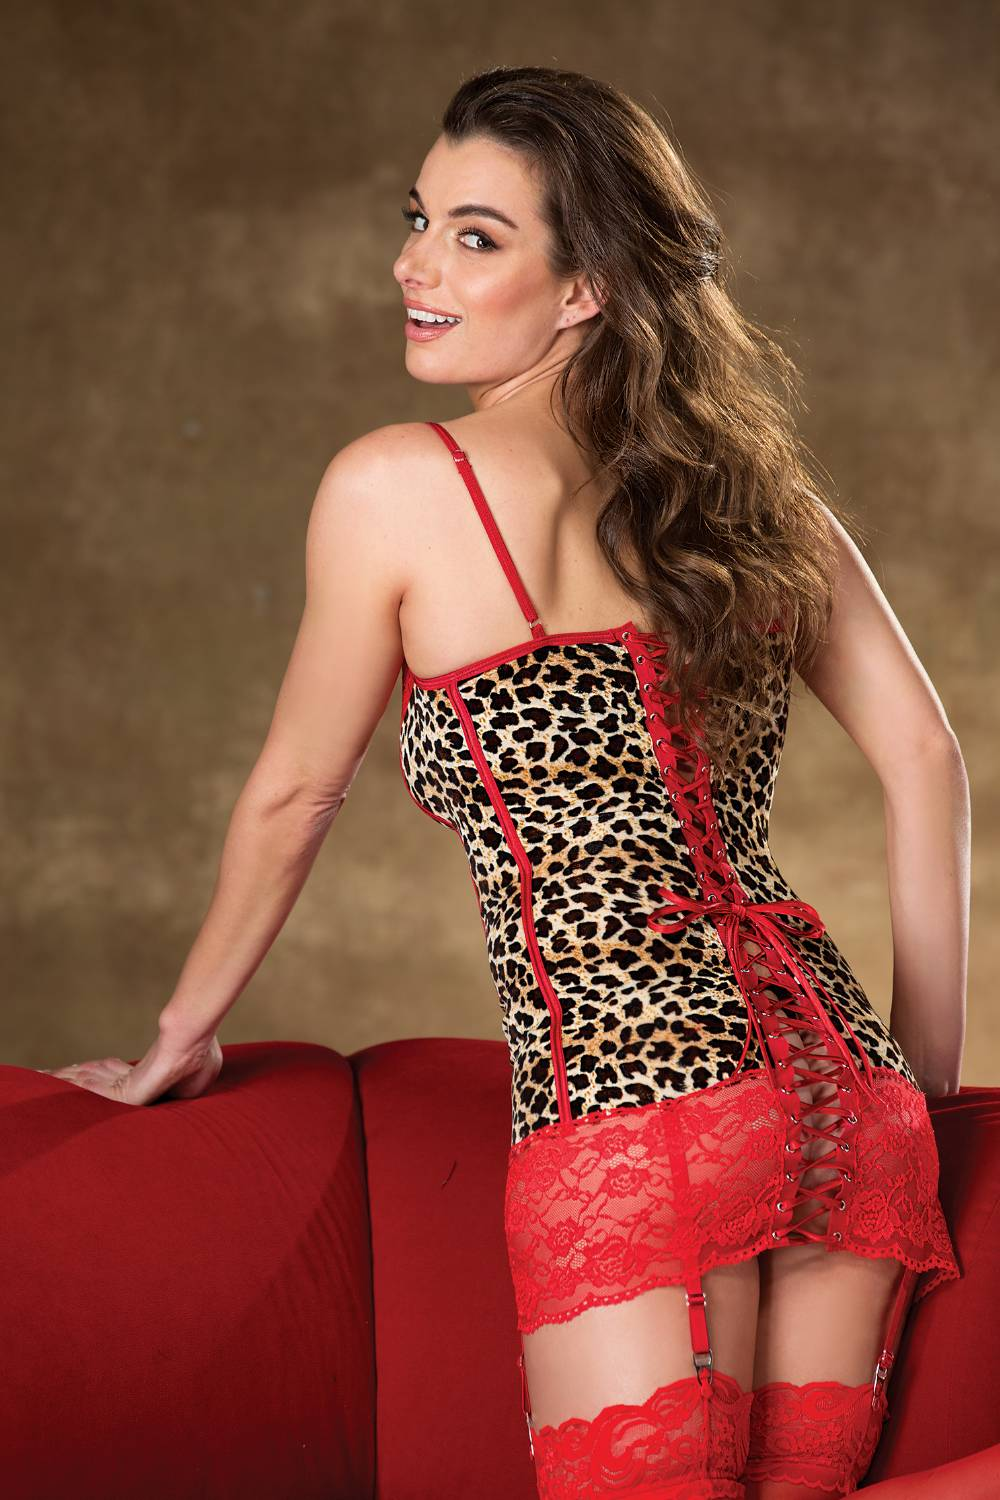 Leopard Mesh & Lace Gartered Chemise